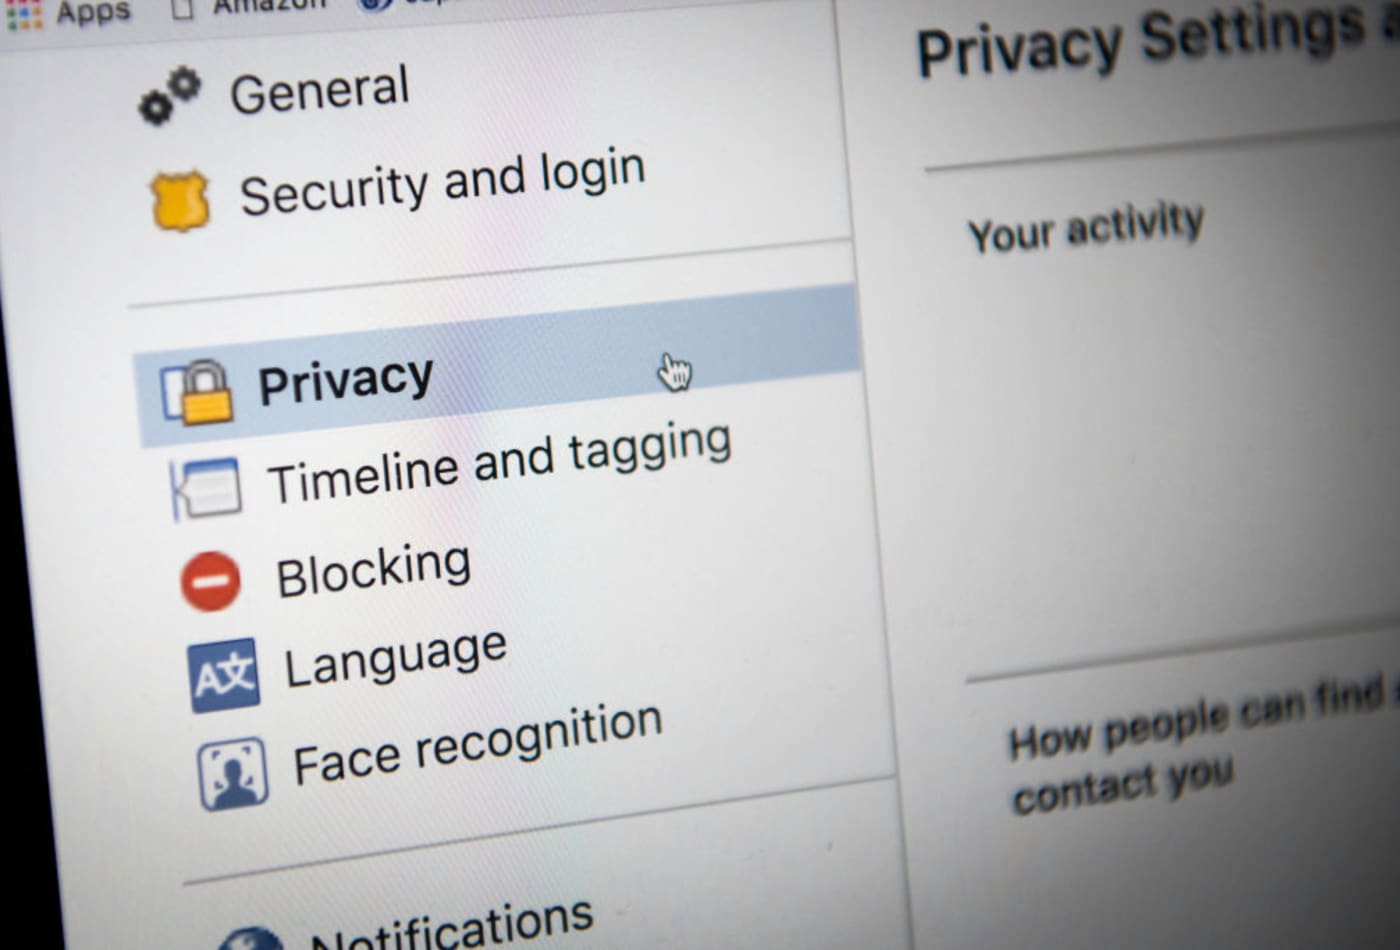 GDPR data privacy rules in Europe and how they apply to US